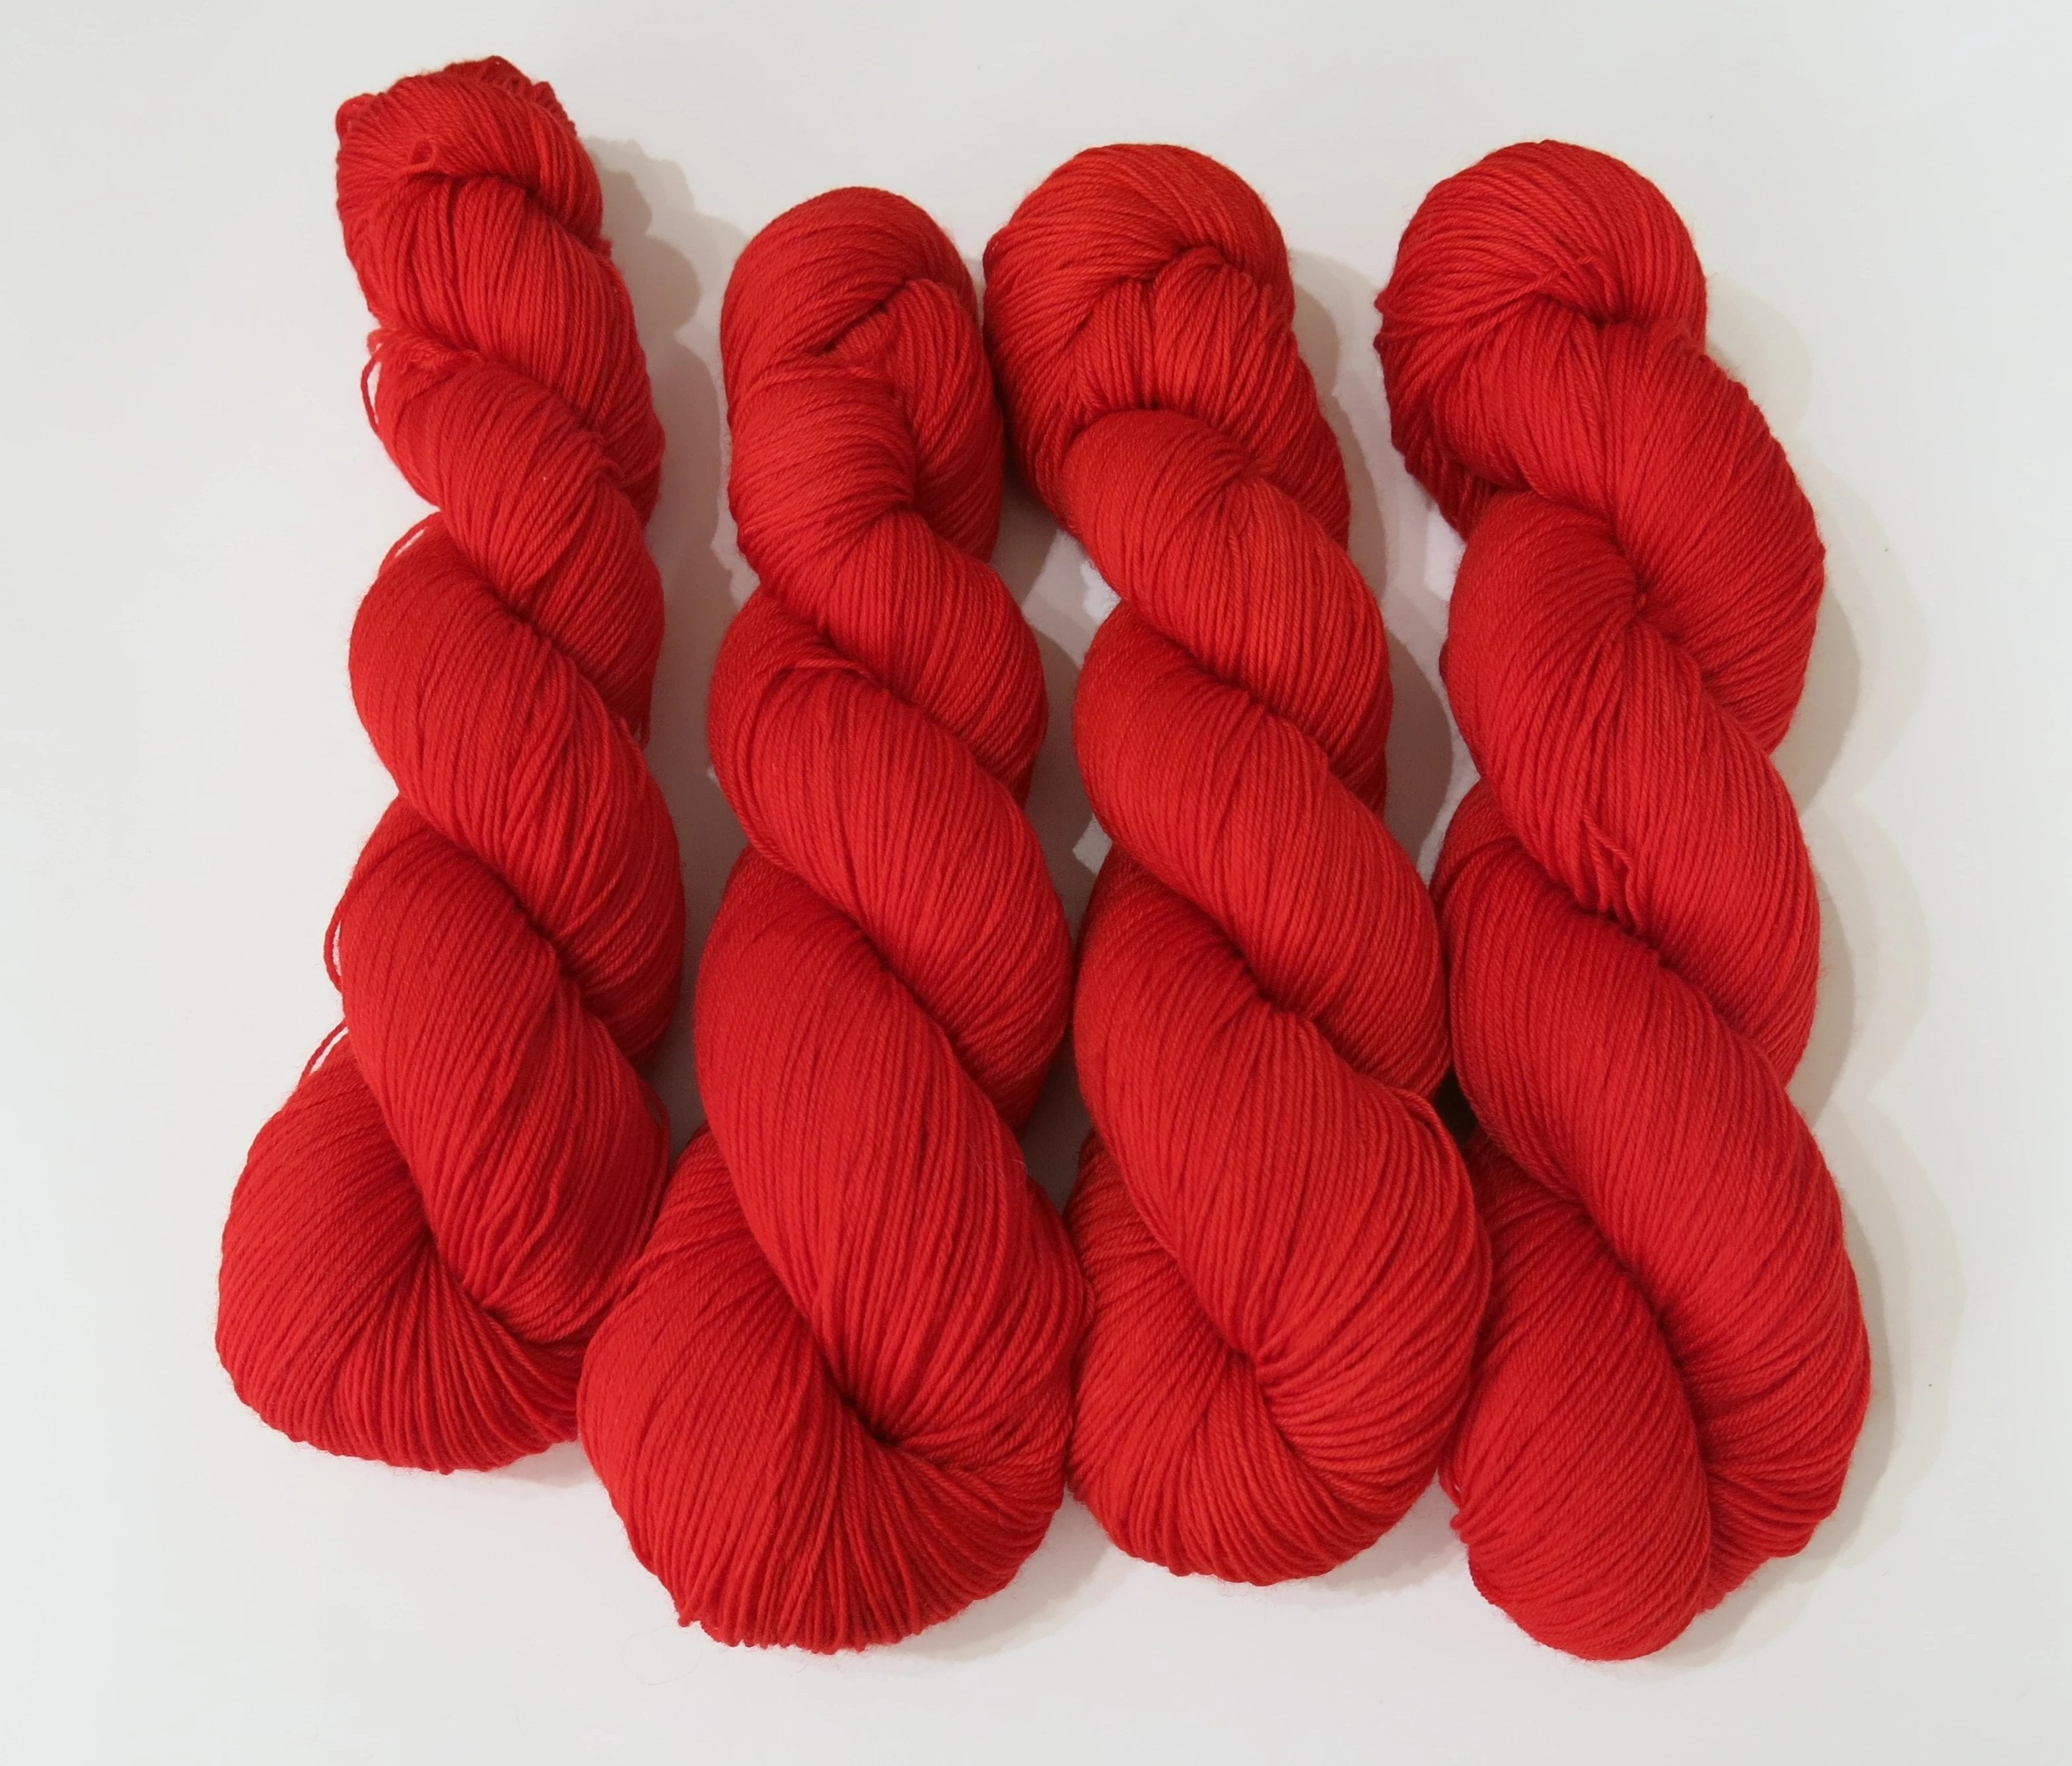 hand dyed solid red superwash merino sock yarn skeins